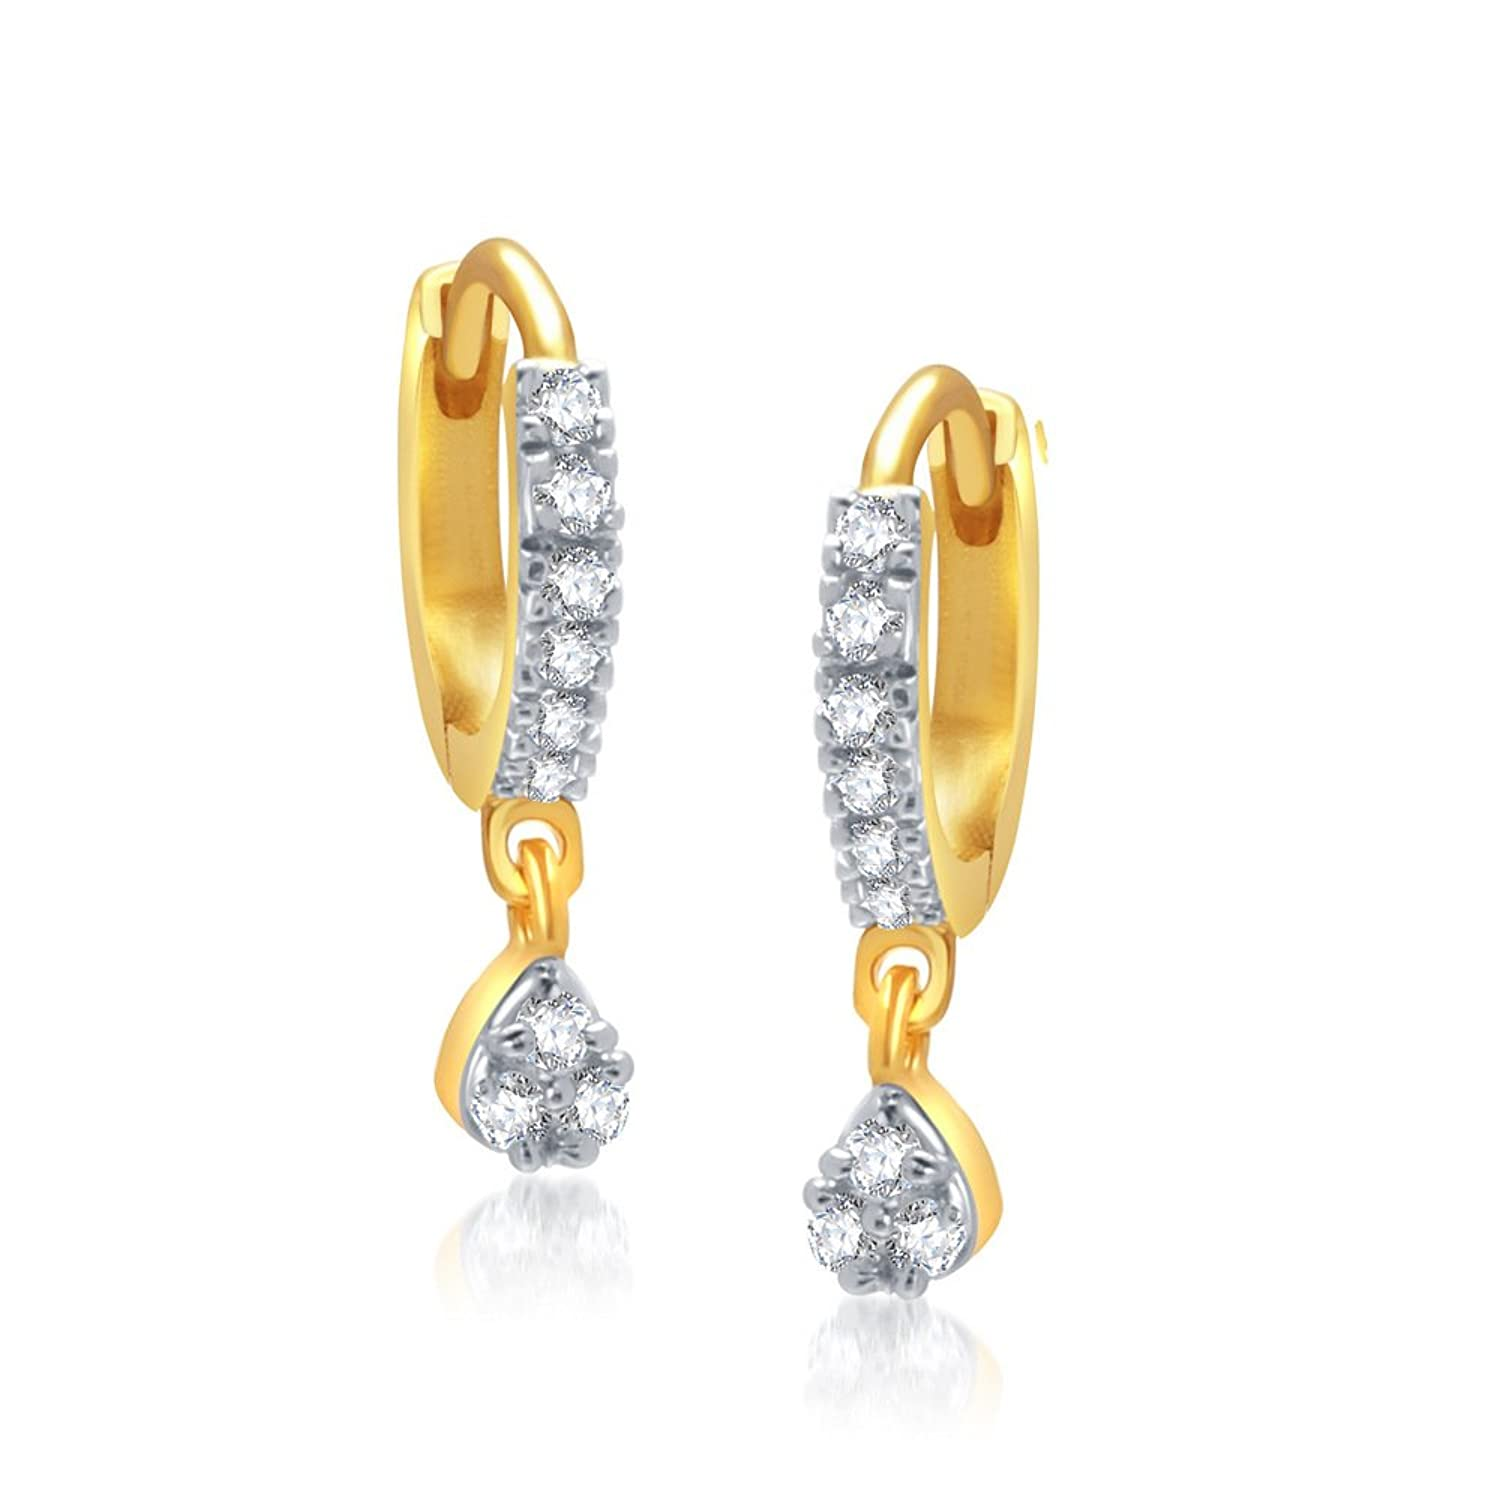 zirconia online buy daily india sterling category with earrings swarovski ziveg made wear silver